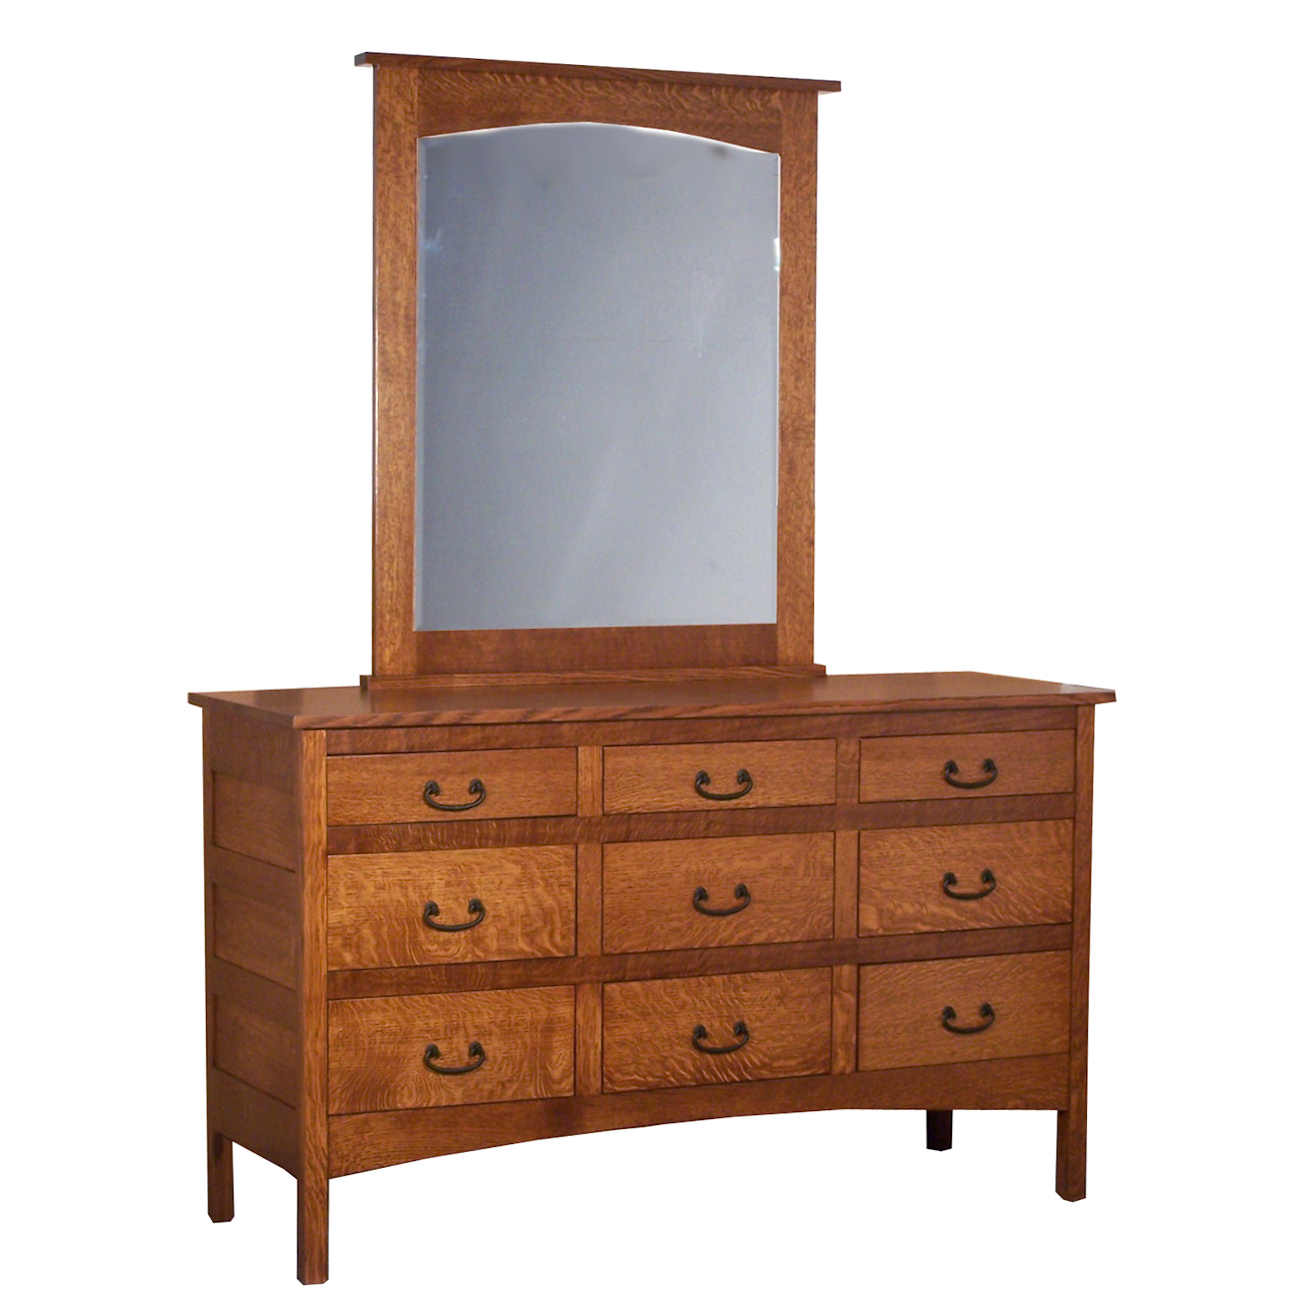 Granny Mission Bedroom Set GD6009 Dresser